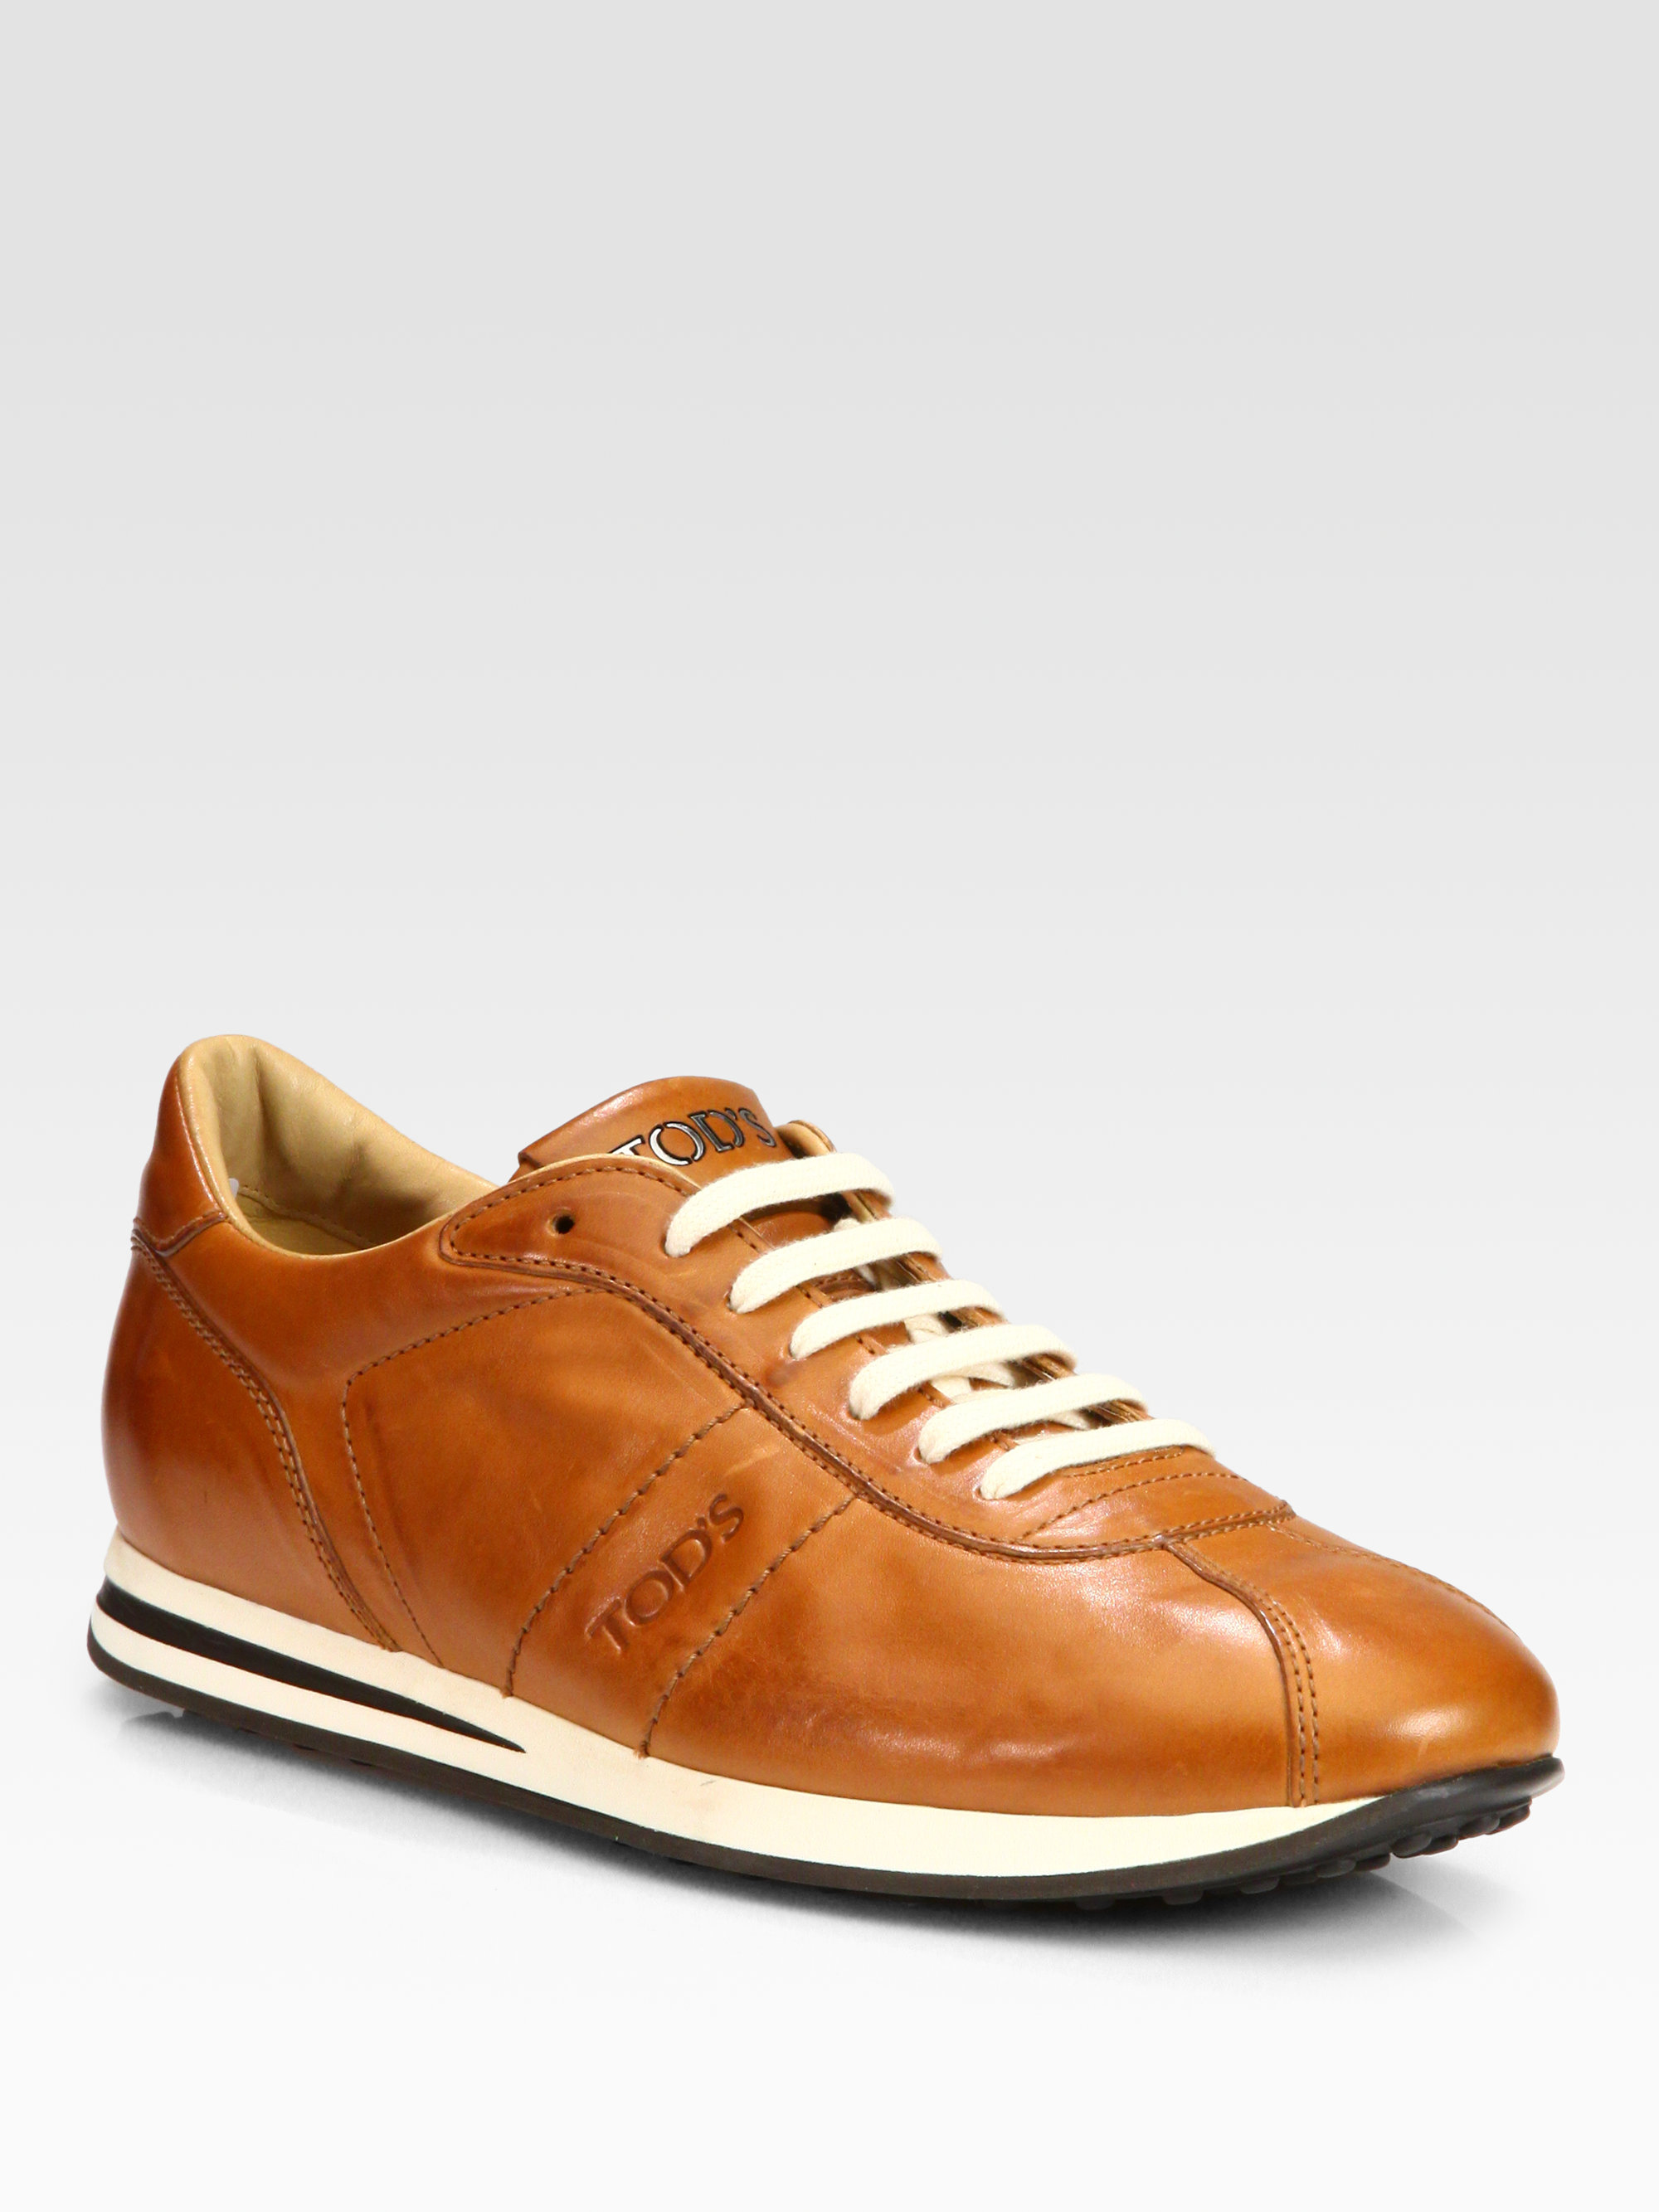 how to get stains out of brown leather shoes